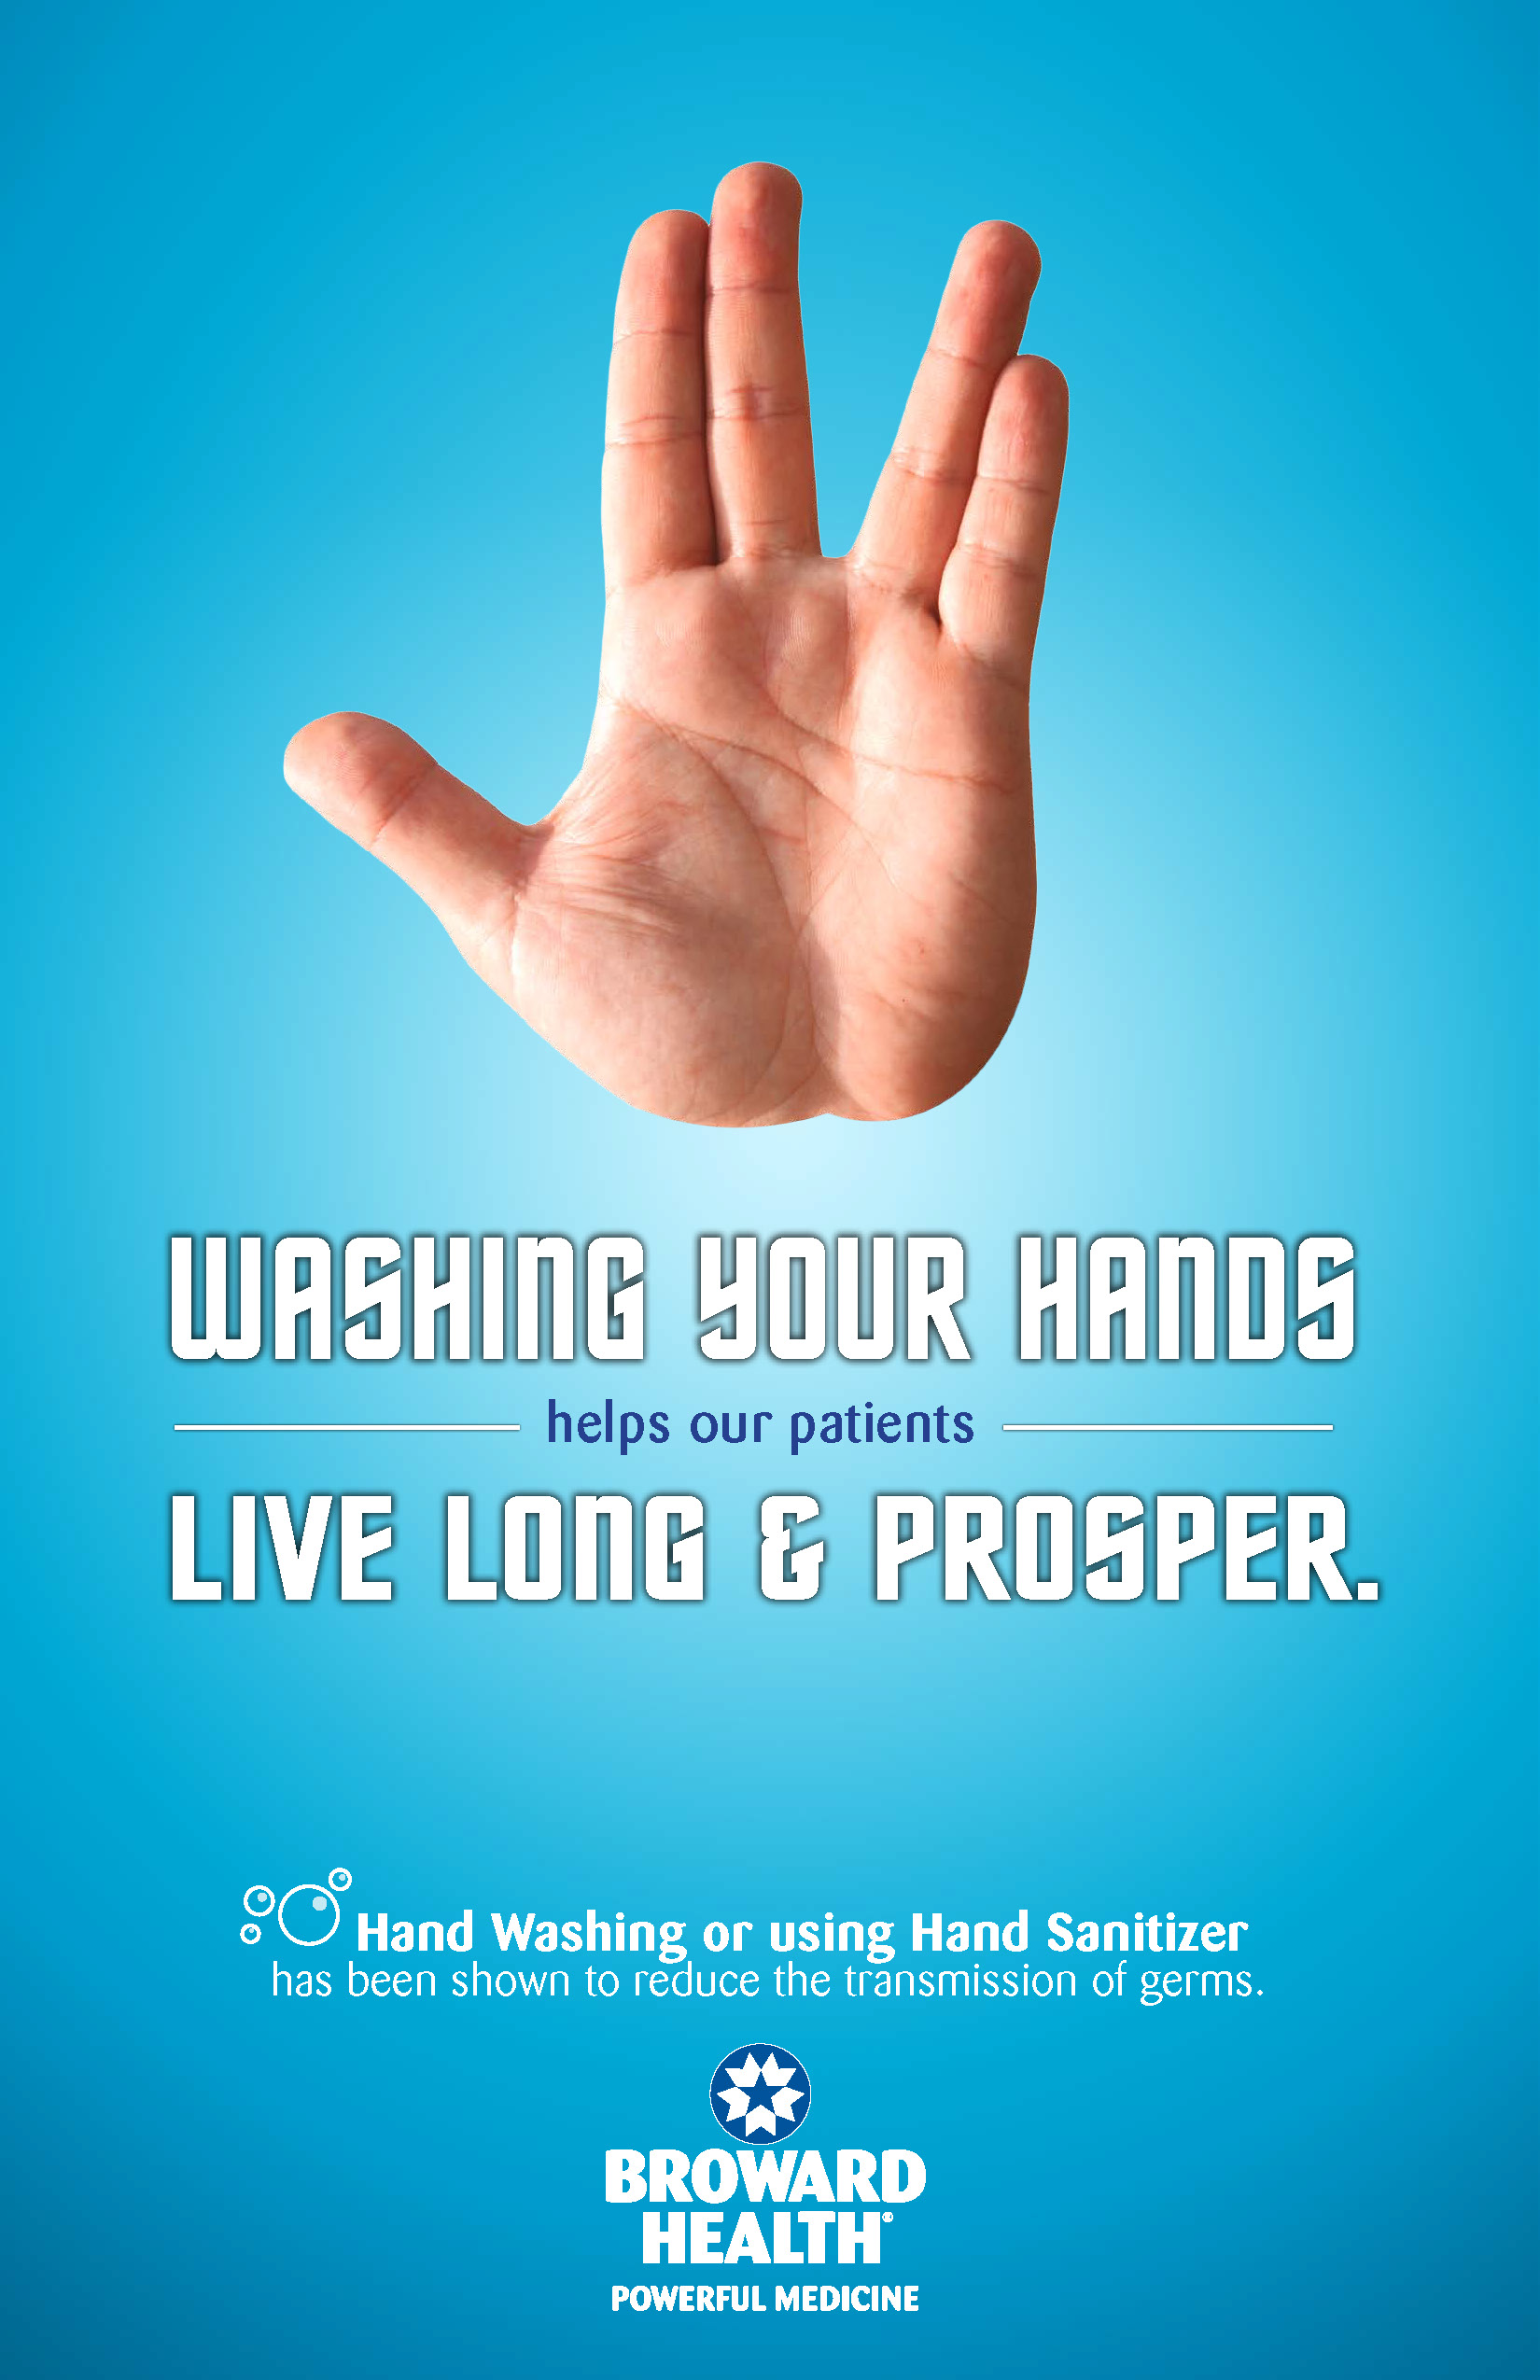 Broward Health _ Hand Washing Poster - Prosper